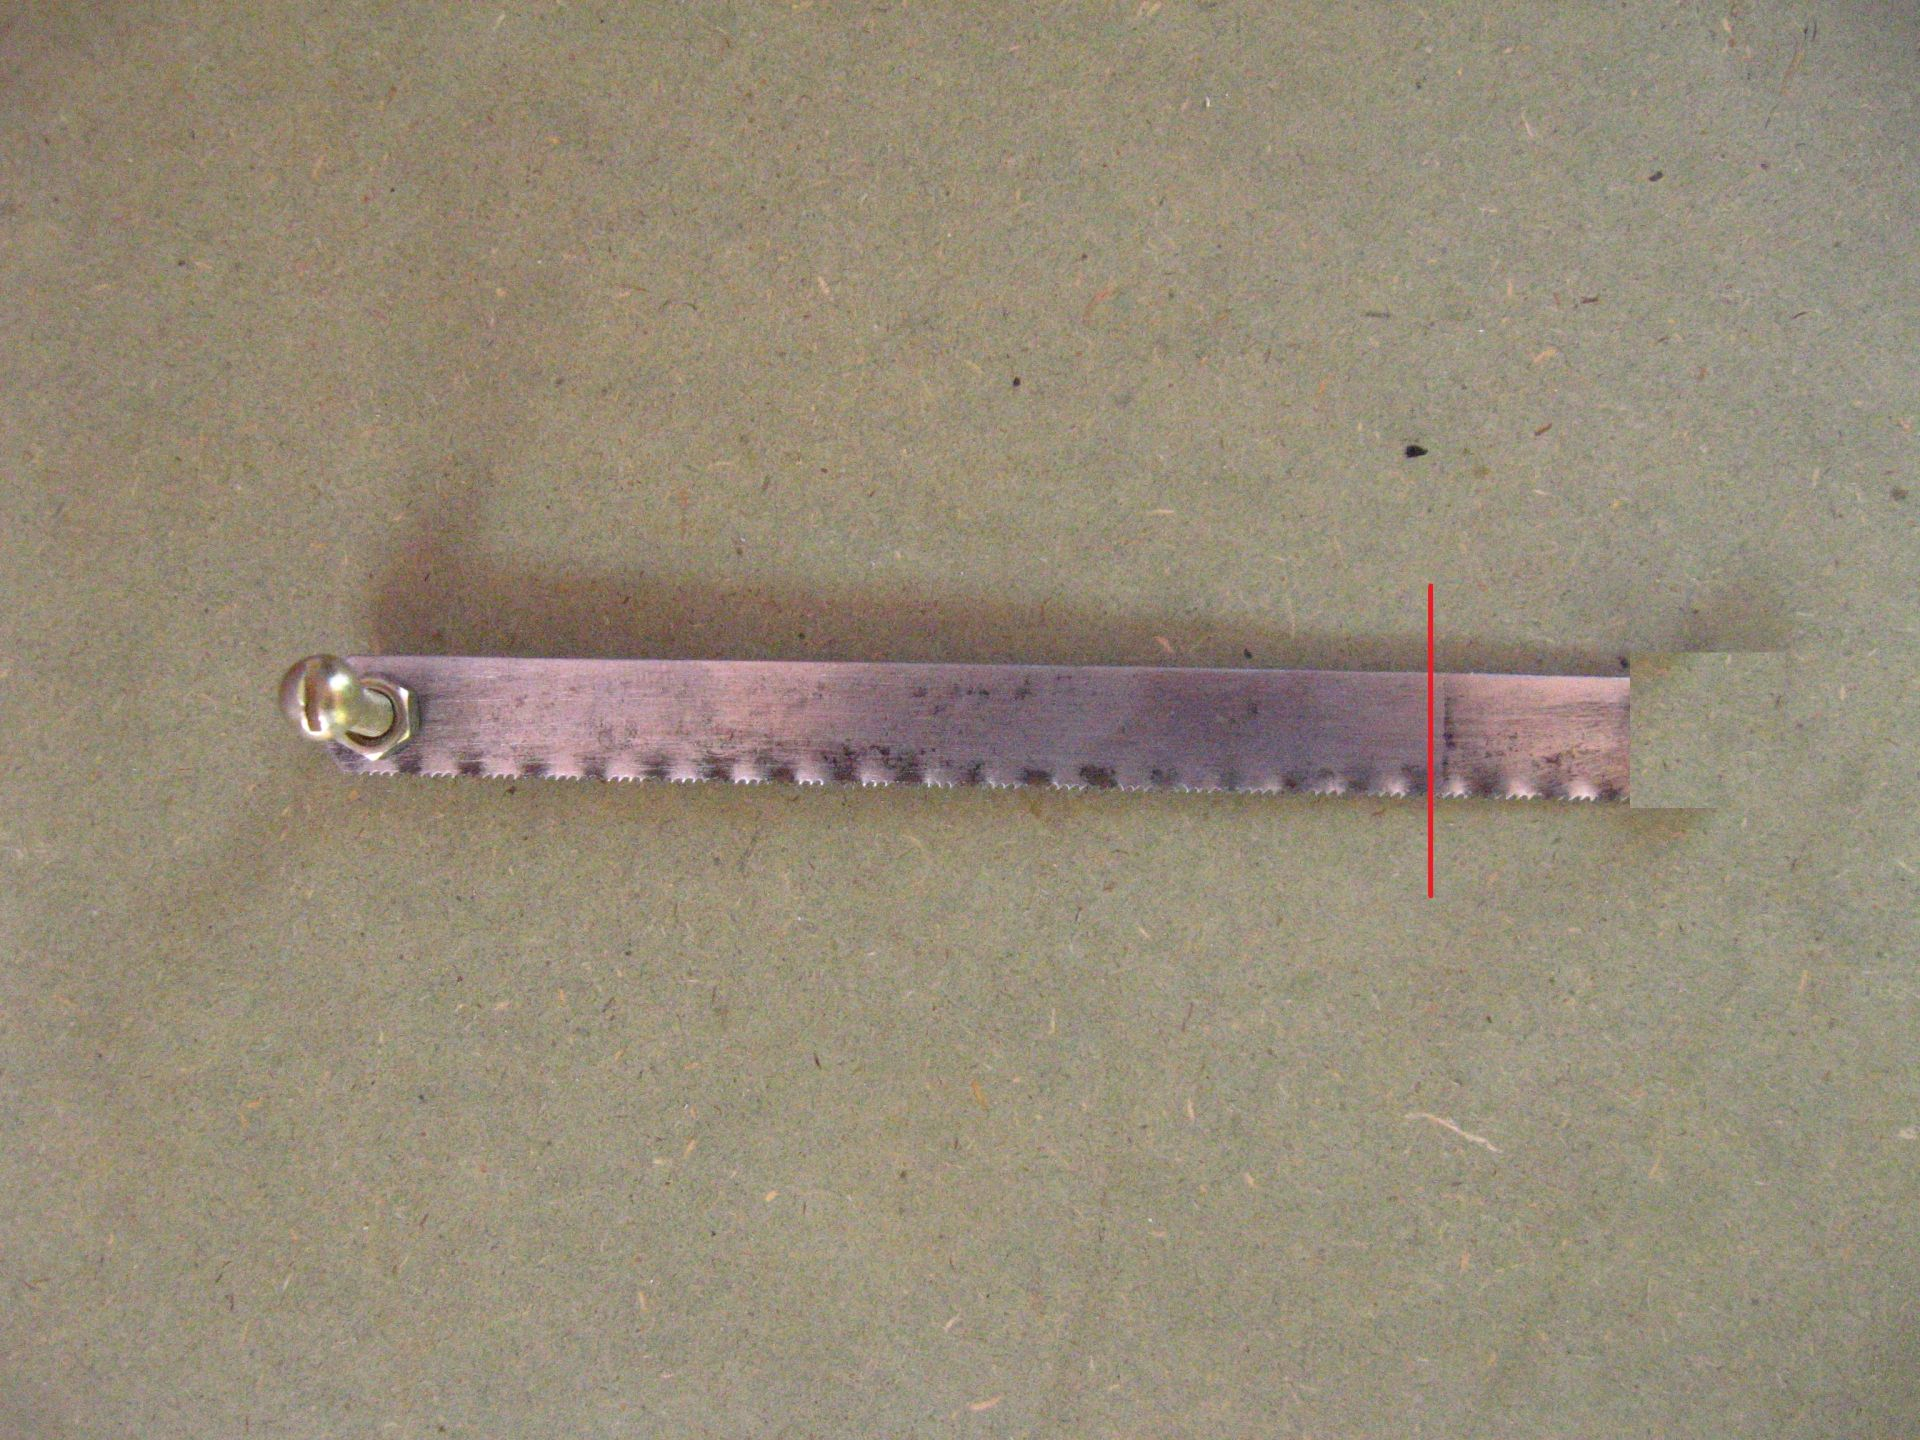 Picture of Make a Notch on One End of Hacksaw Blade